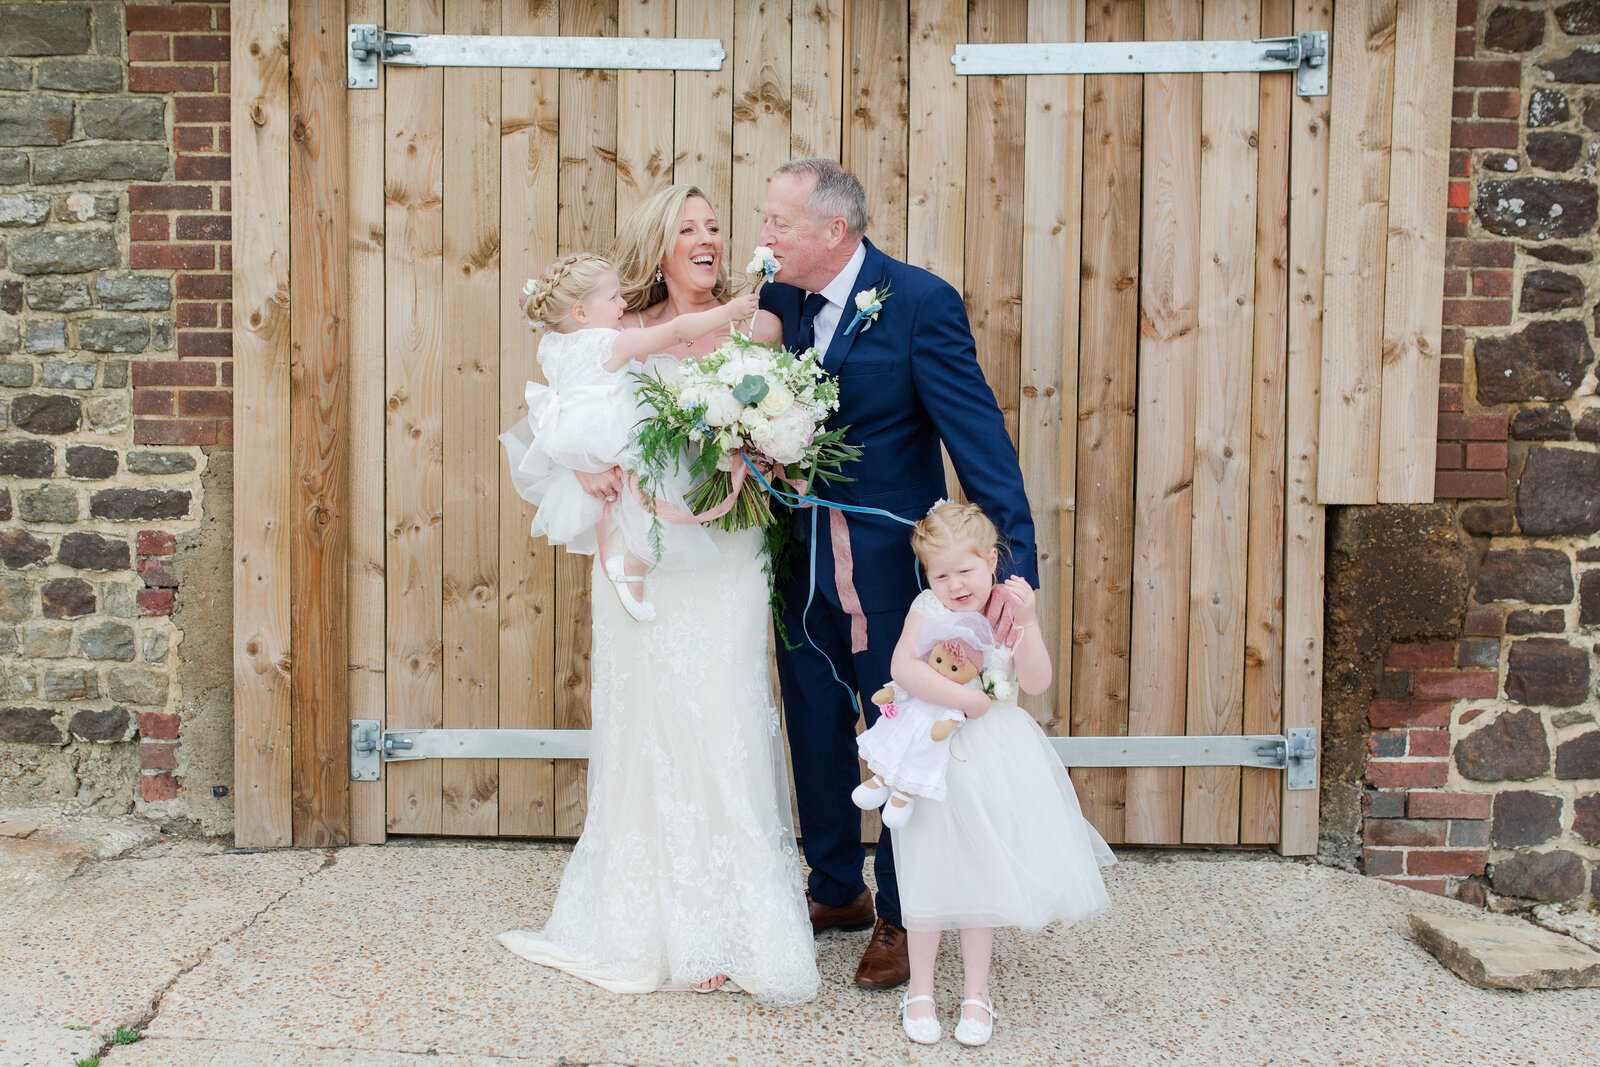 CCW0407-adorlee-wedding-photography